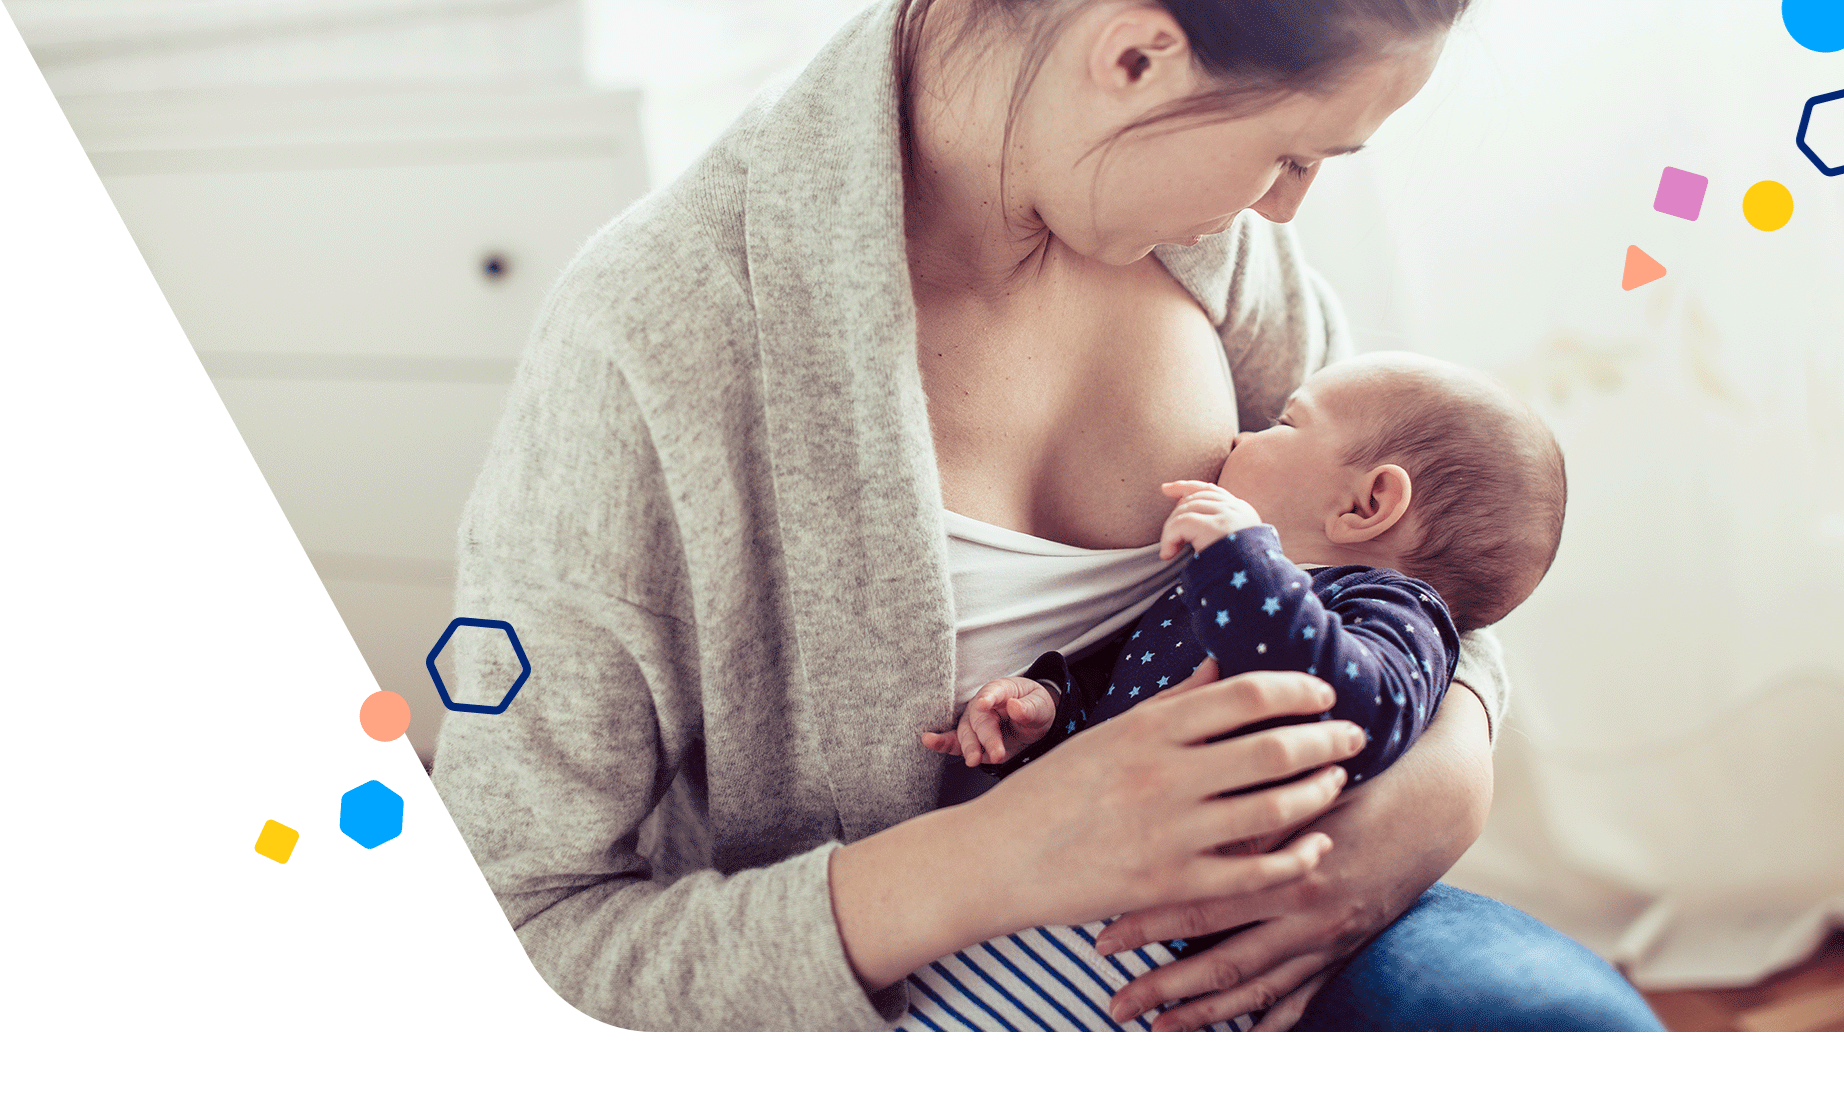 Coronavirus Pregnancy and Breastfeeding What You Should Know